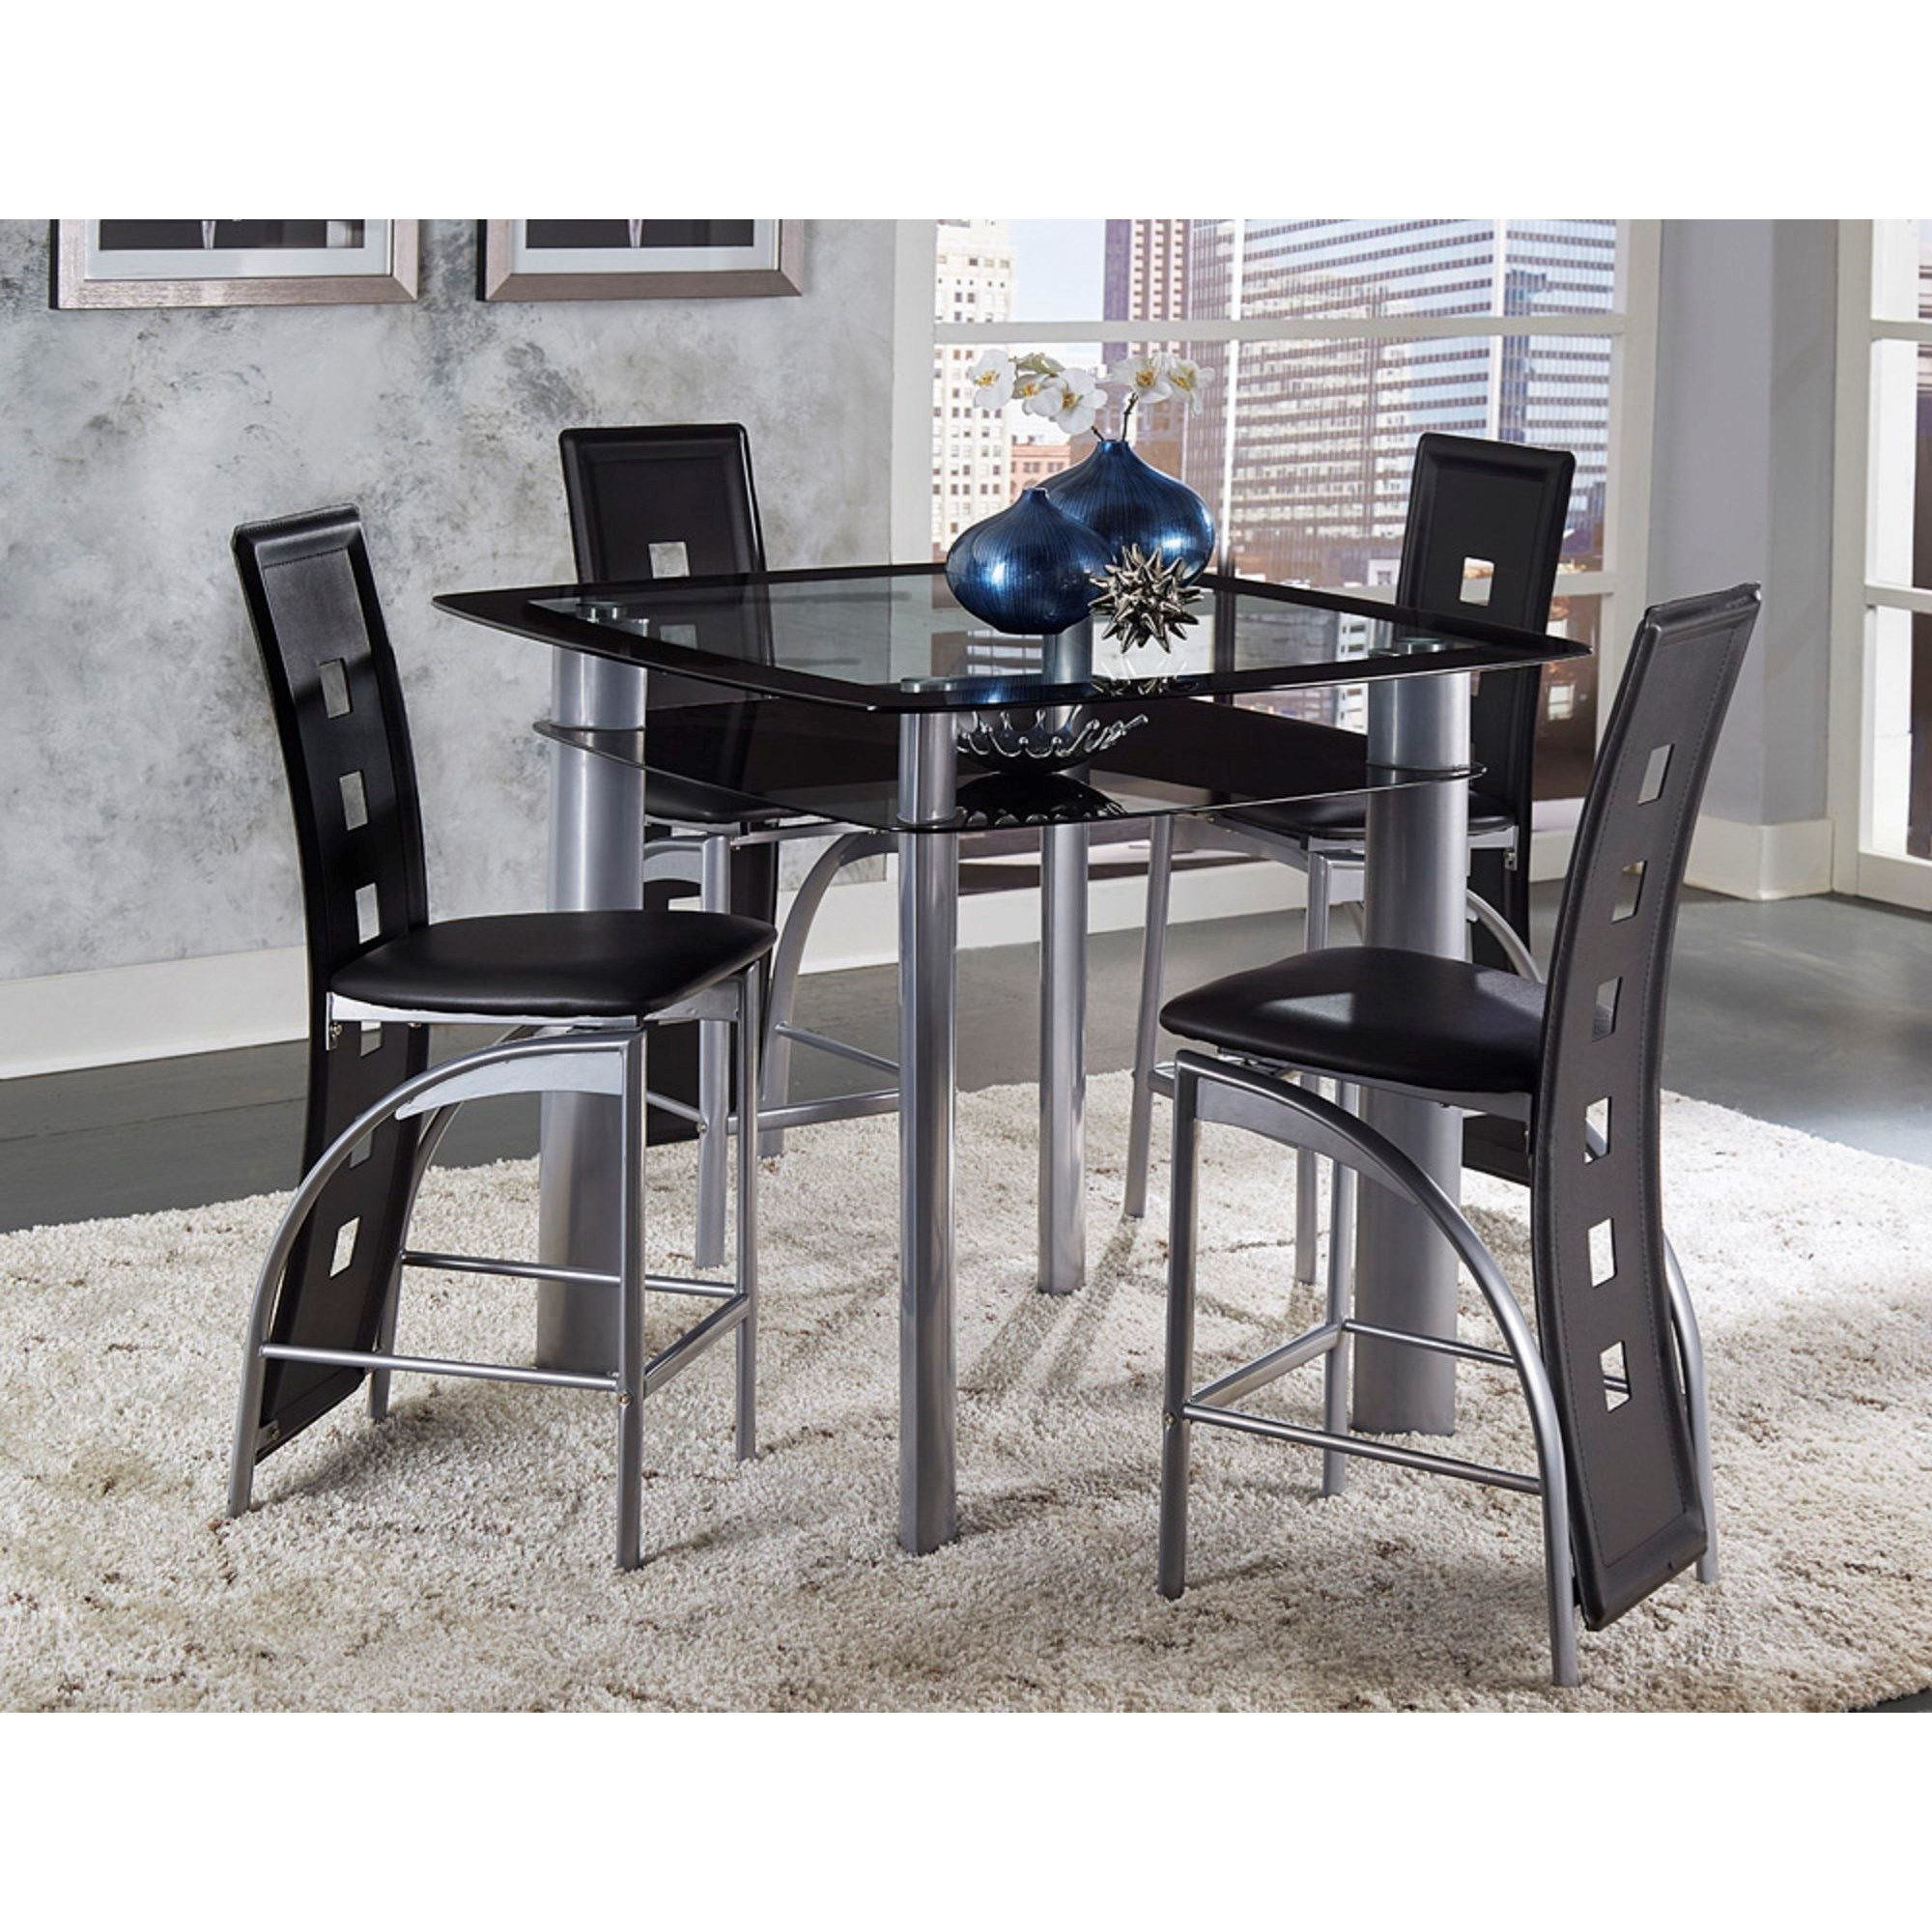 Sona Counter Height Table and Chair Set by Homelegance at Beck's Furniture